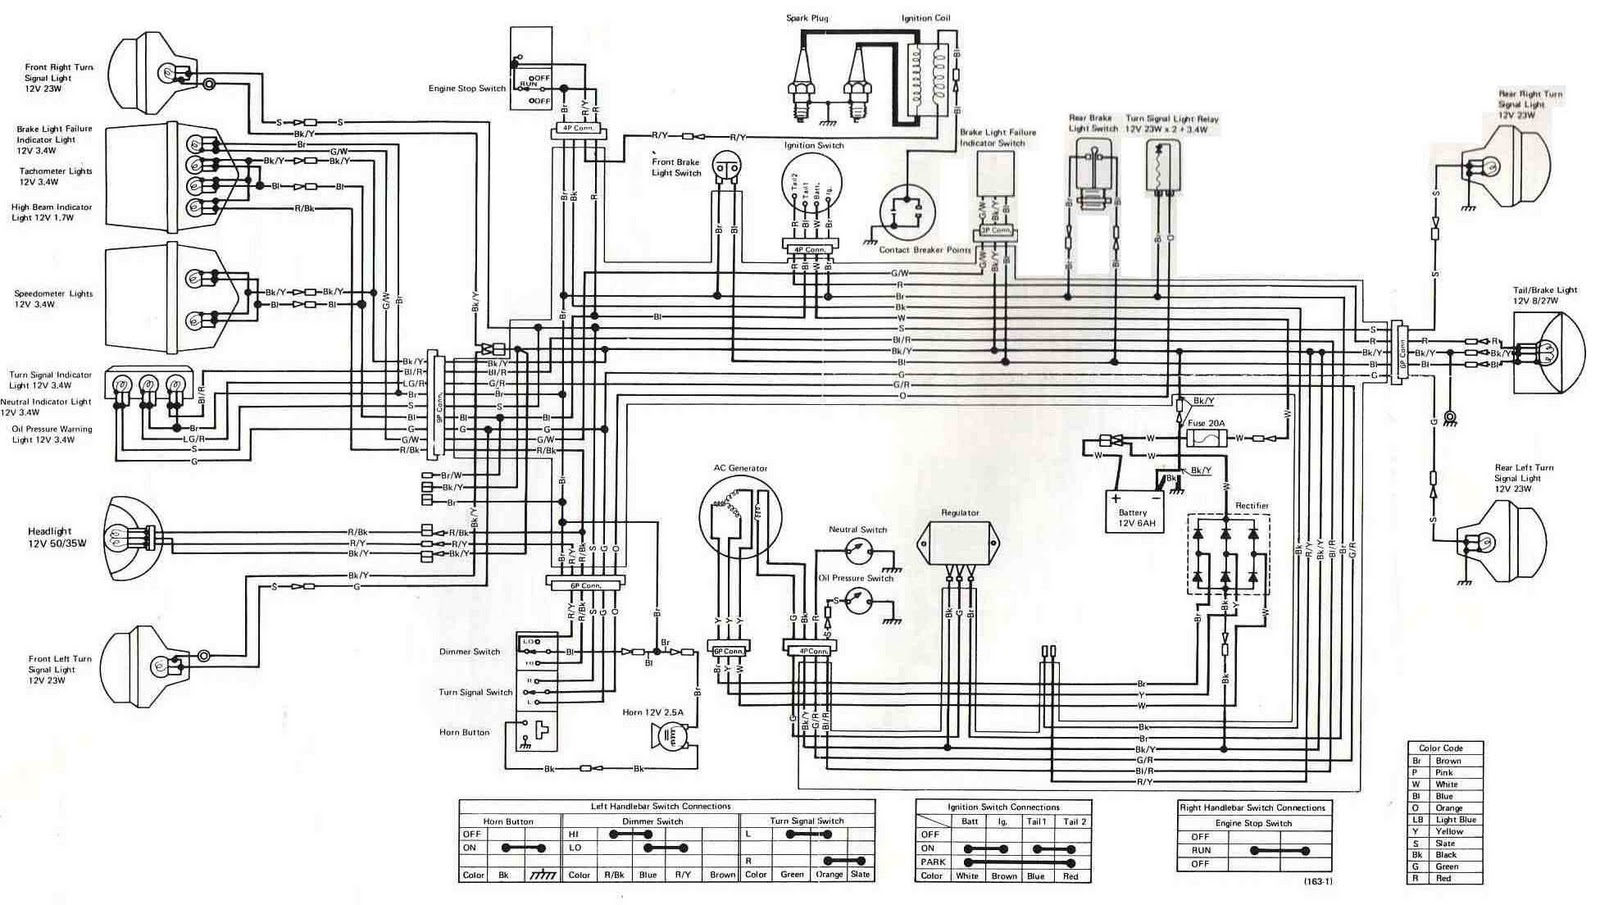 wire diagram for blaster image wiring diagram yamaha tw200 engine diagram yamaha wiring diagrams on 5 wire diagram for 200 blaster